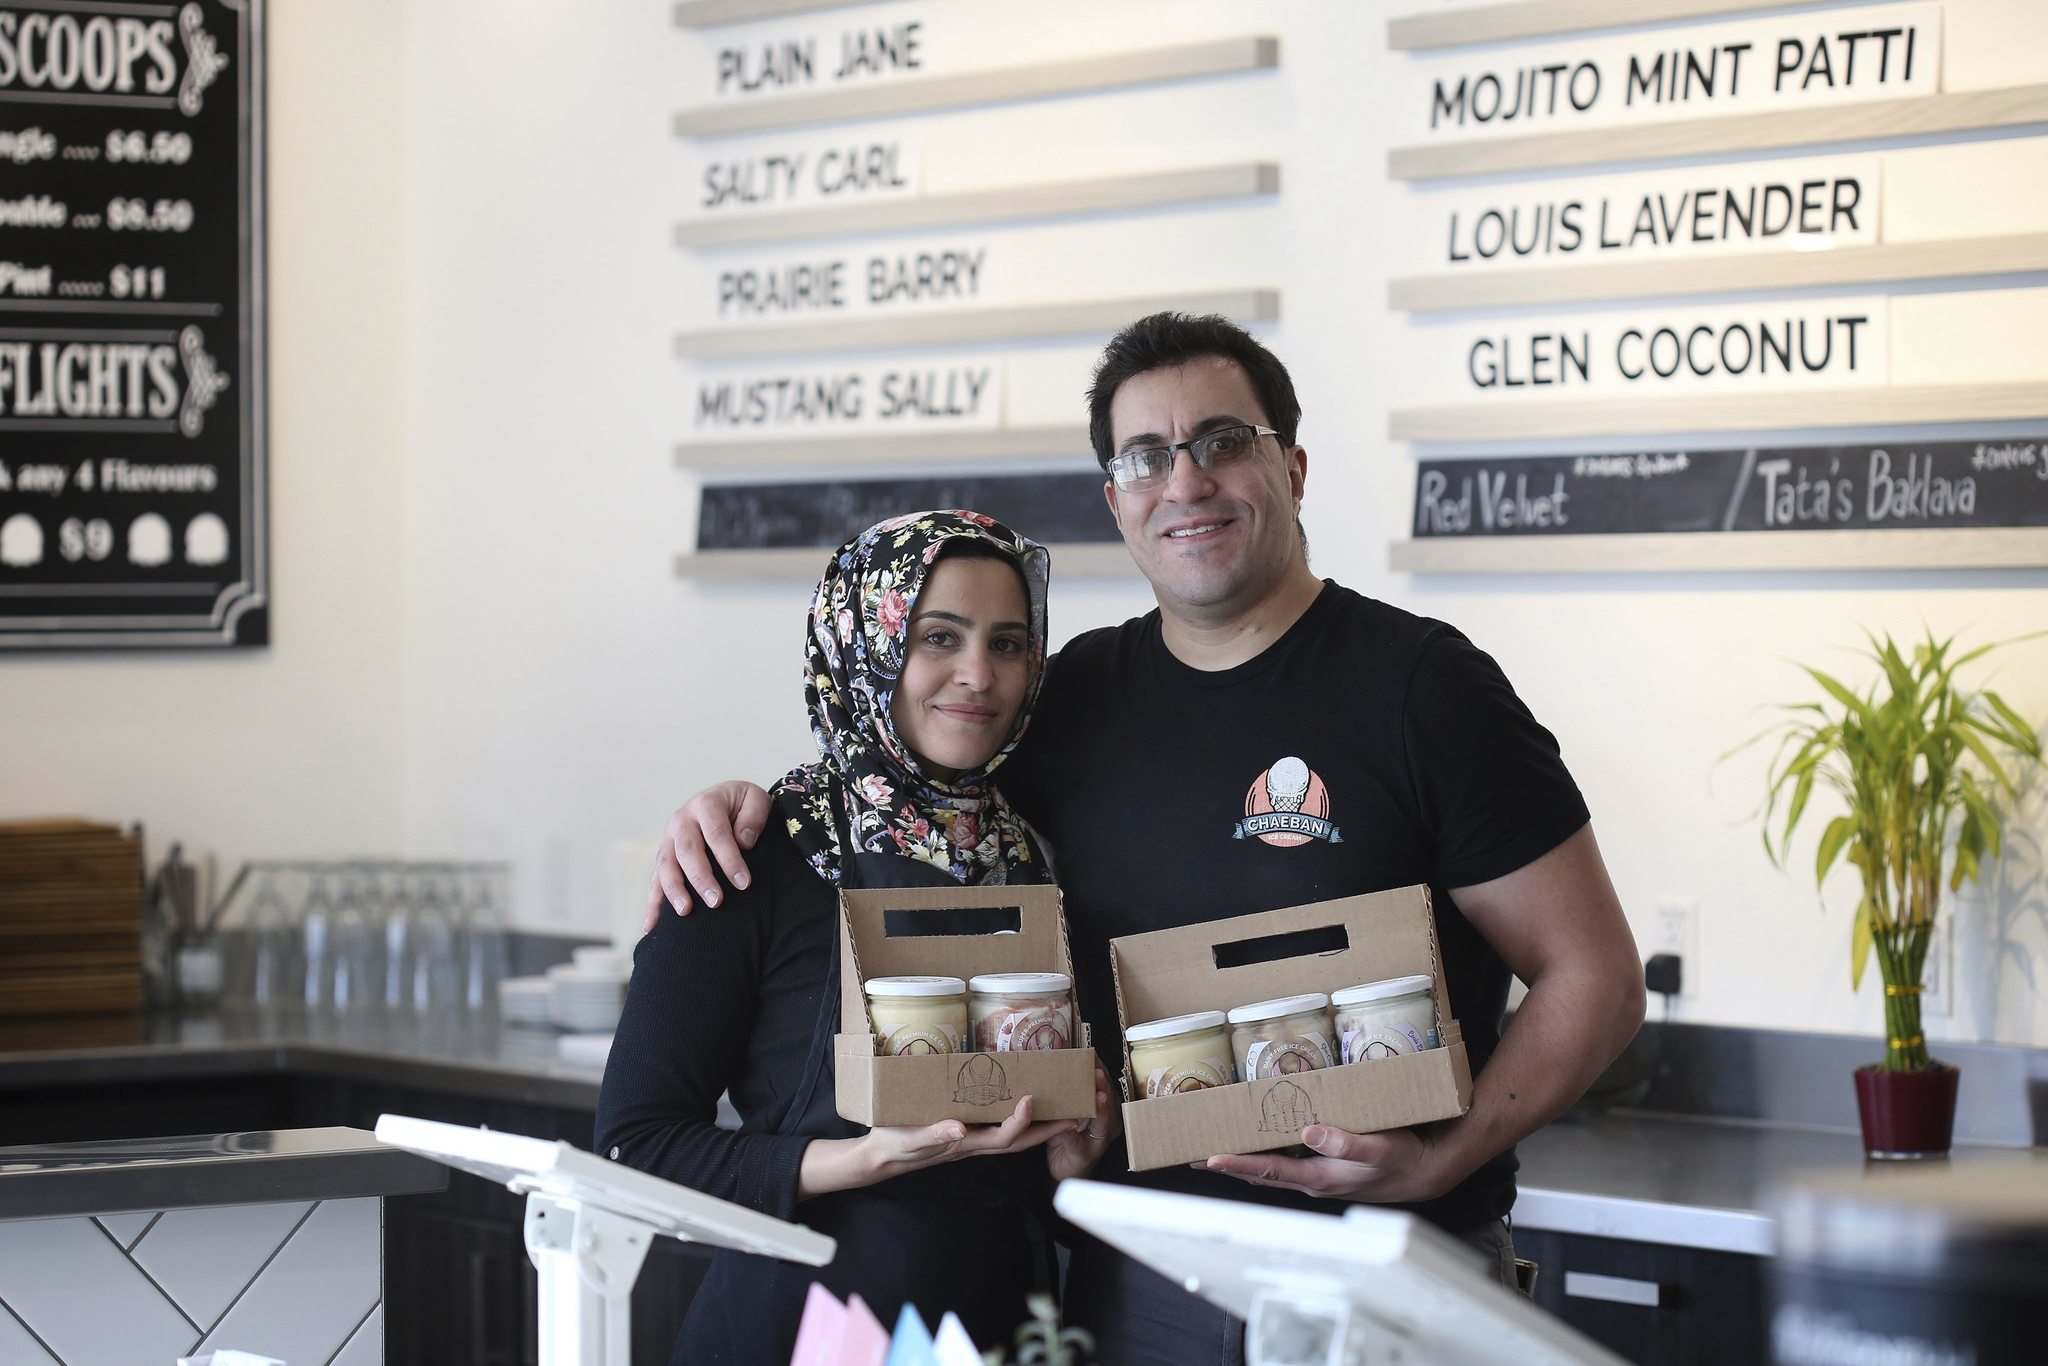 SHANNON VANRAES / WINNIPEG FREE PRESS</p><p>Joseph Chaeban and his wife Zainab Ali settled on a subscription model in order to better forecast the business's cash flow and cover expenses. Customers can sign up online and the minimum cost of a subscription is $20 for two pints of ice cream a month with free delivery.</p>